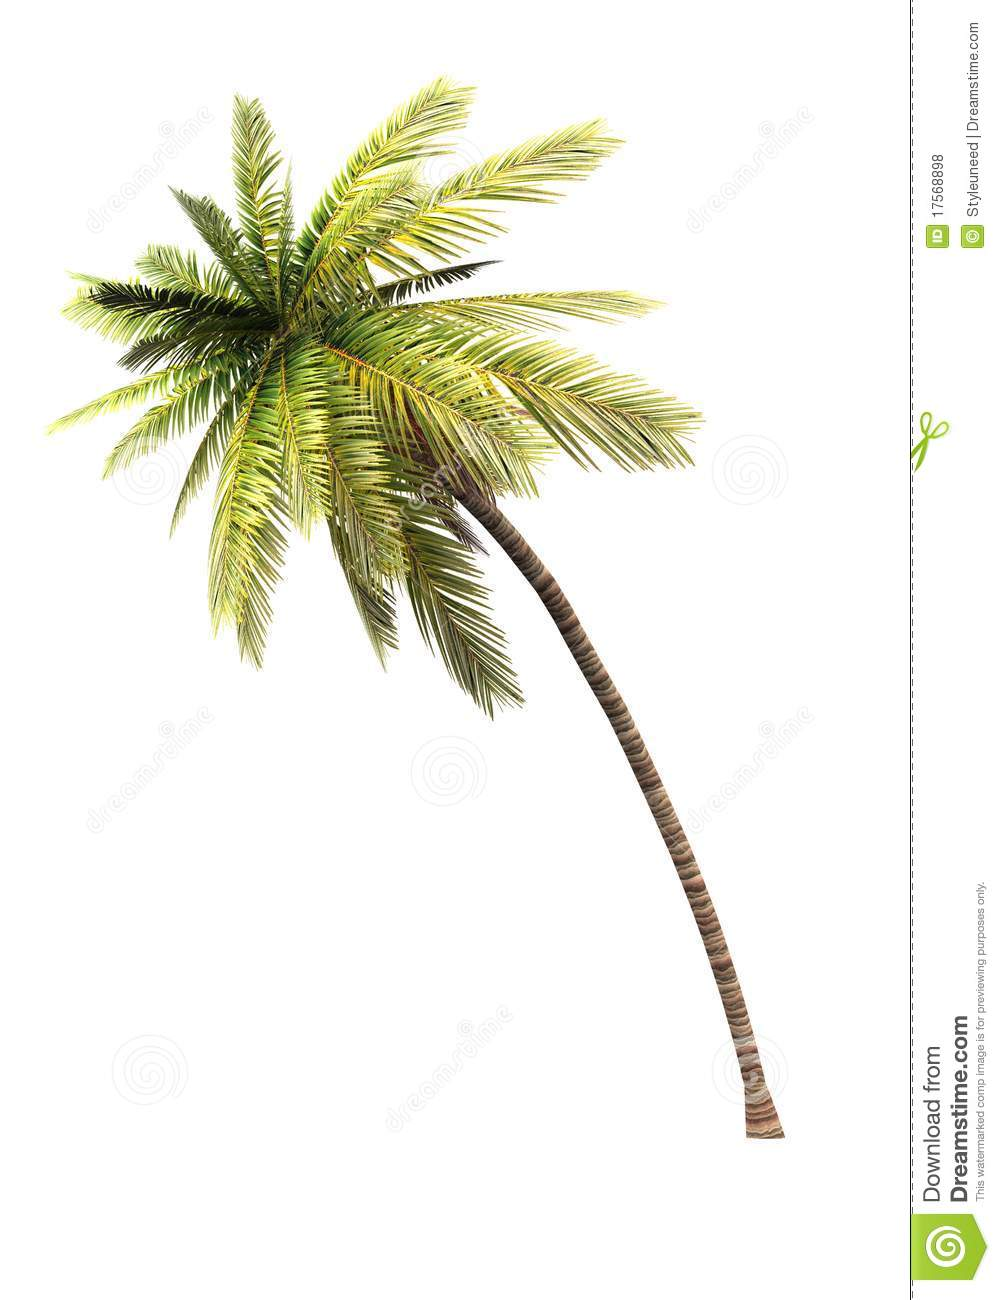 3D Coconut Tree 02 Royalty Free Stock Photos - Image: 17568898